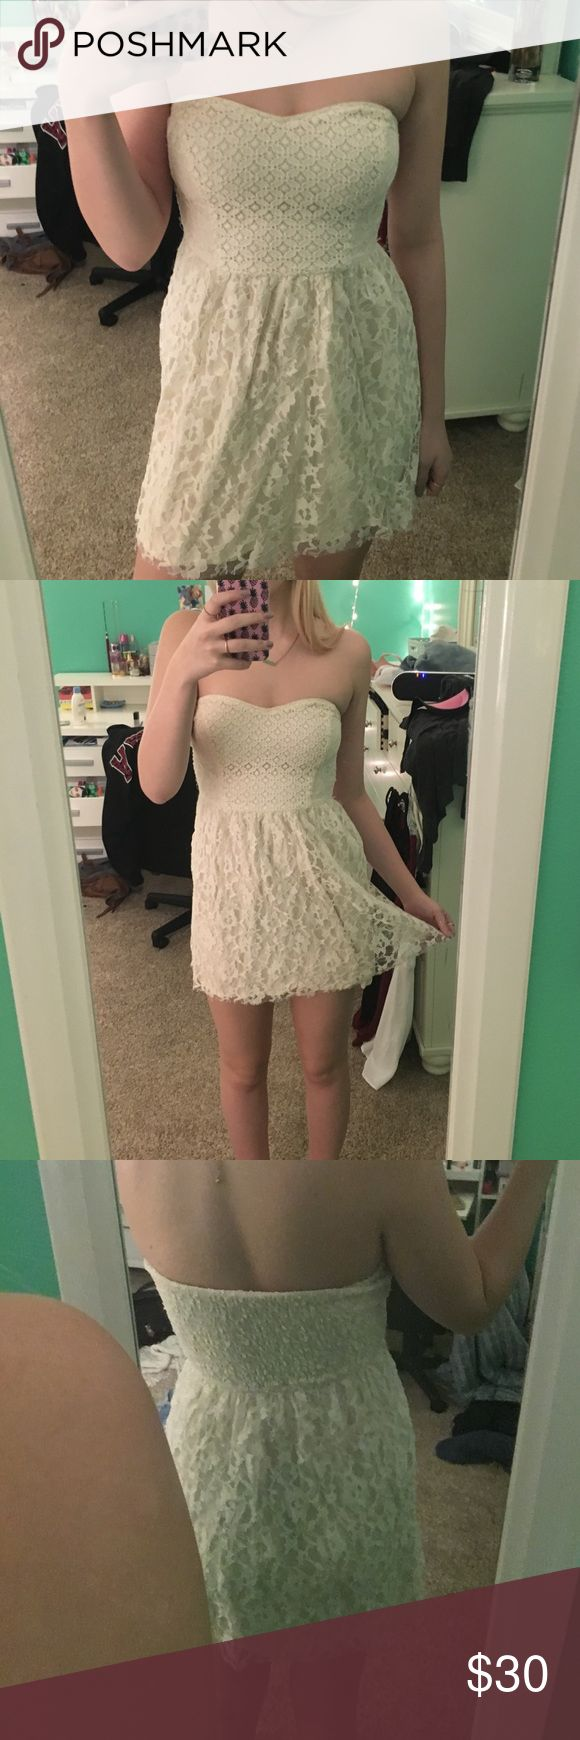 Cream hollister dress! Tight dress with a  floral design. Stretchy bust area so fits easily! Hollister Dresses Mini